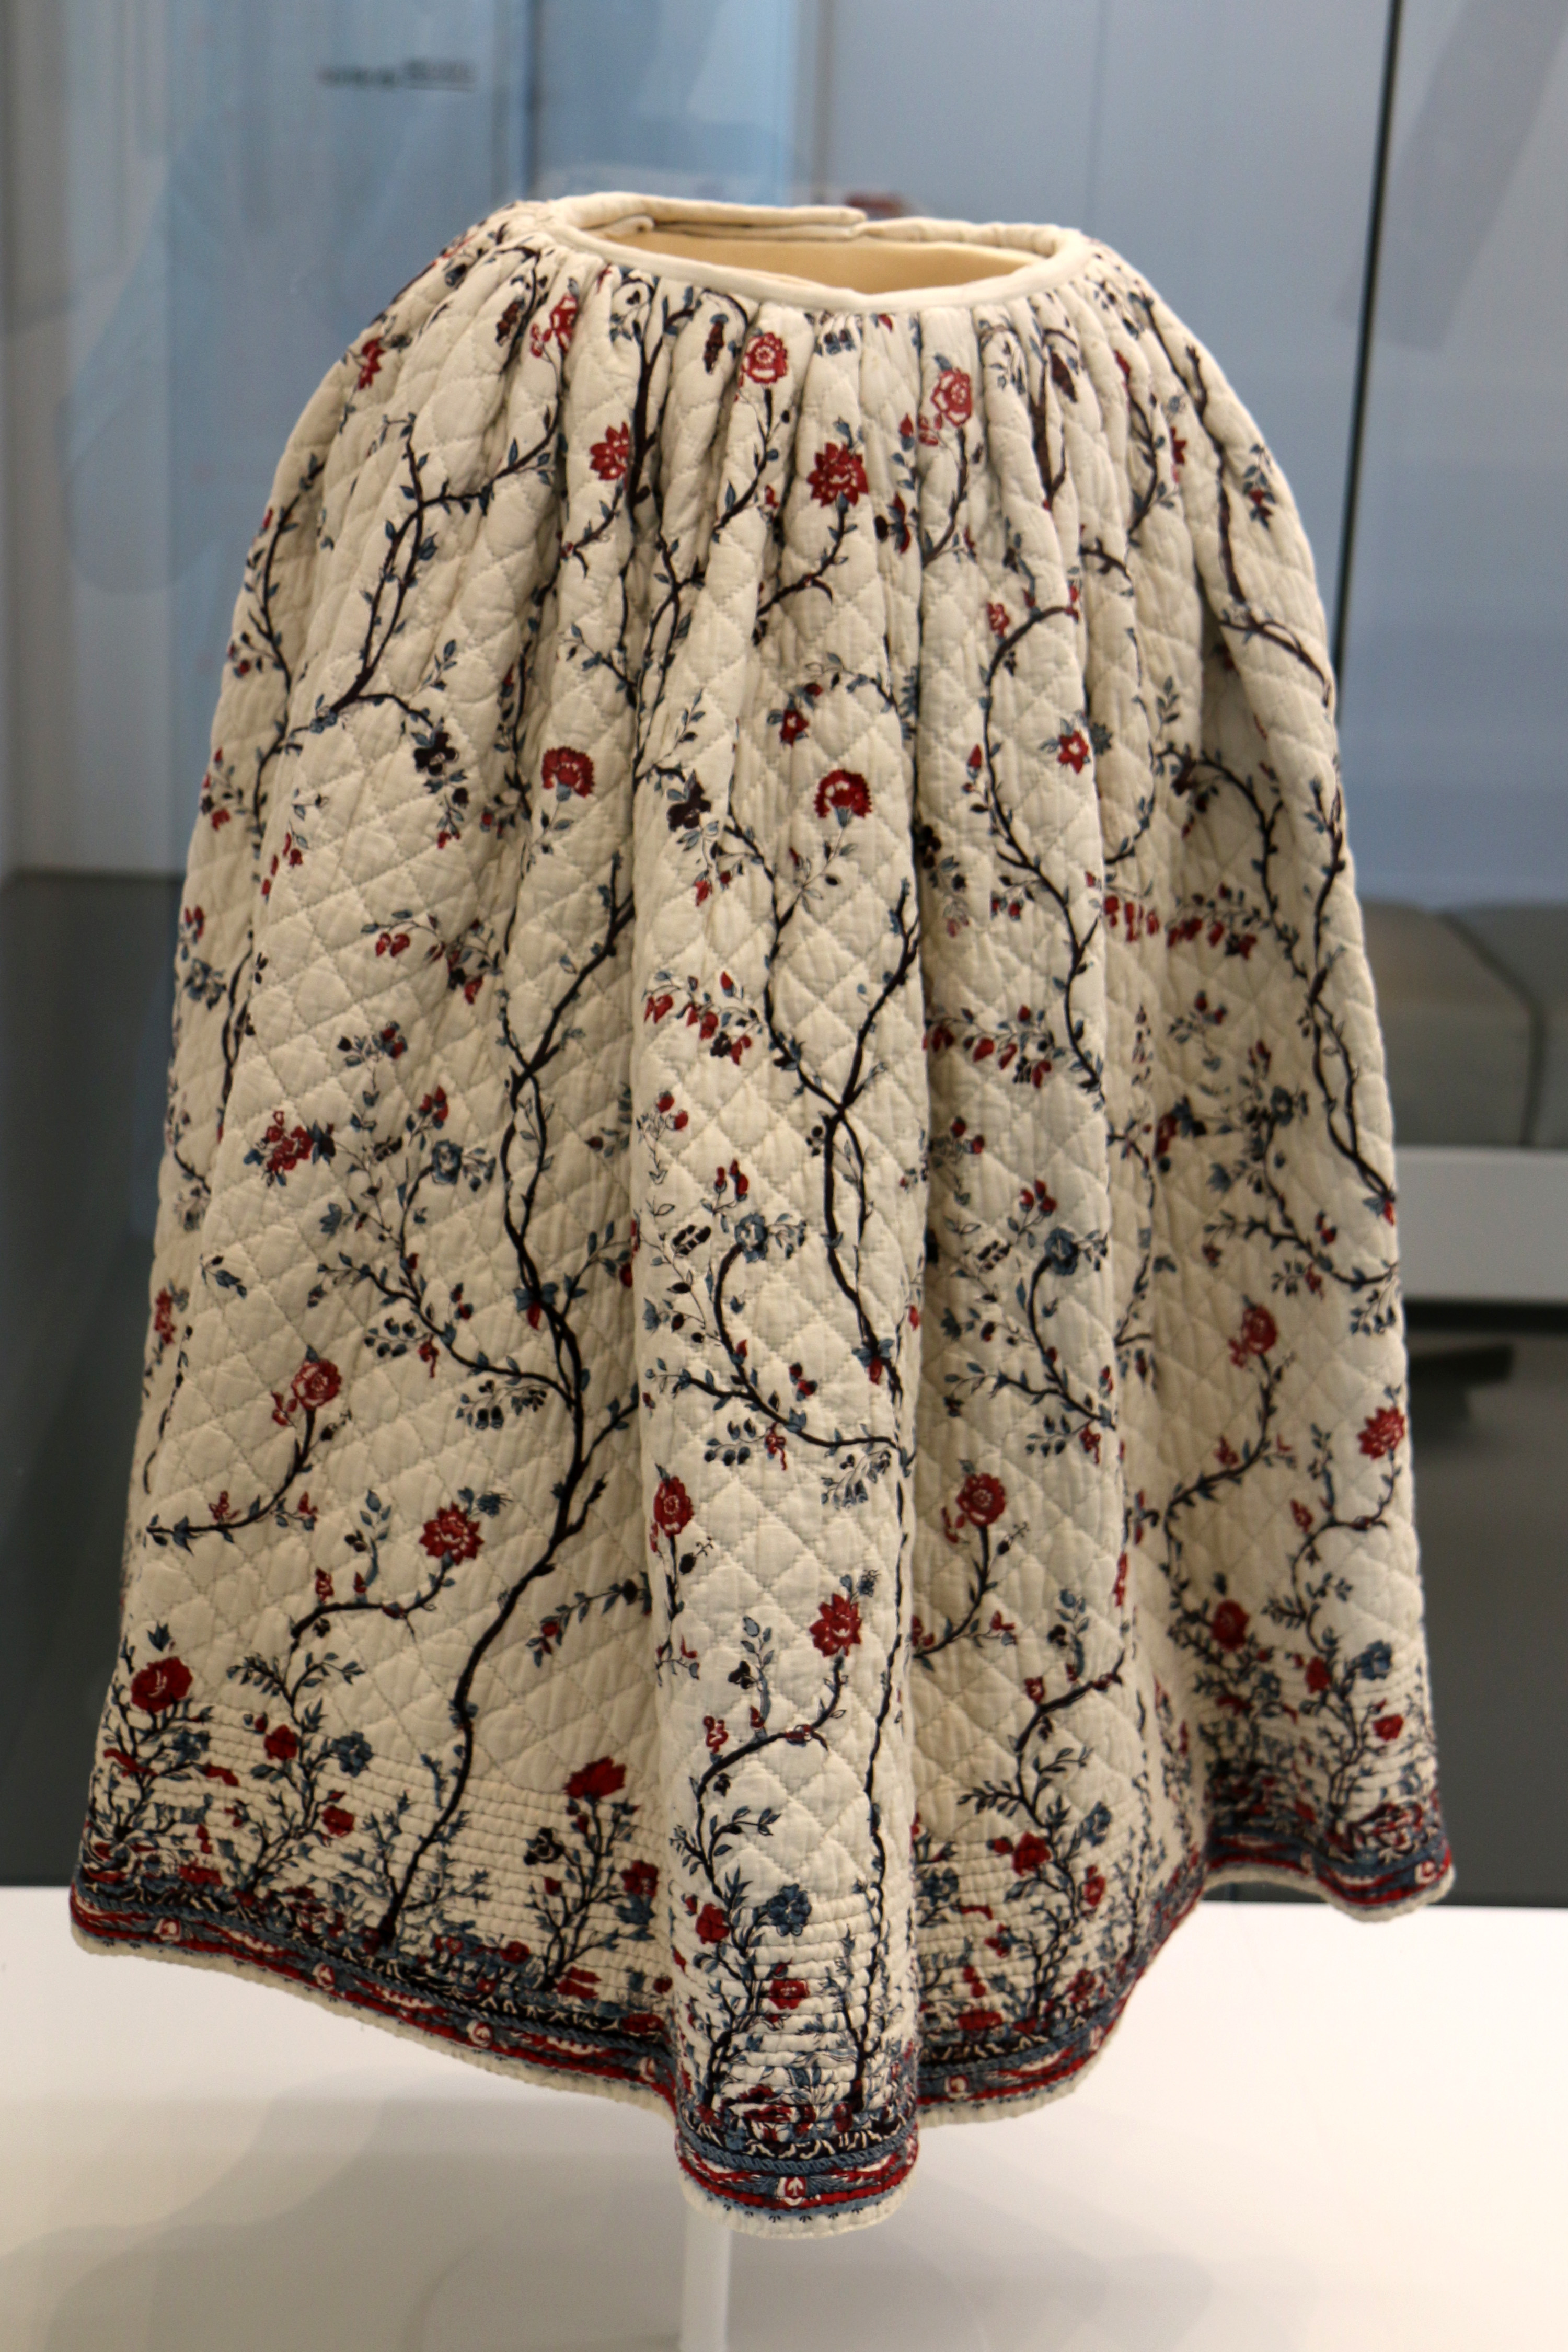 Quilted petticoat of Indian cotton of the eighteenth century in Marseille History Museum.